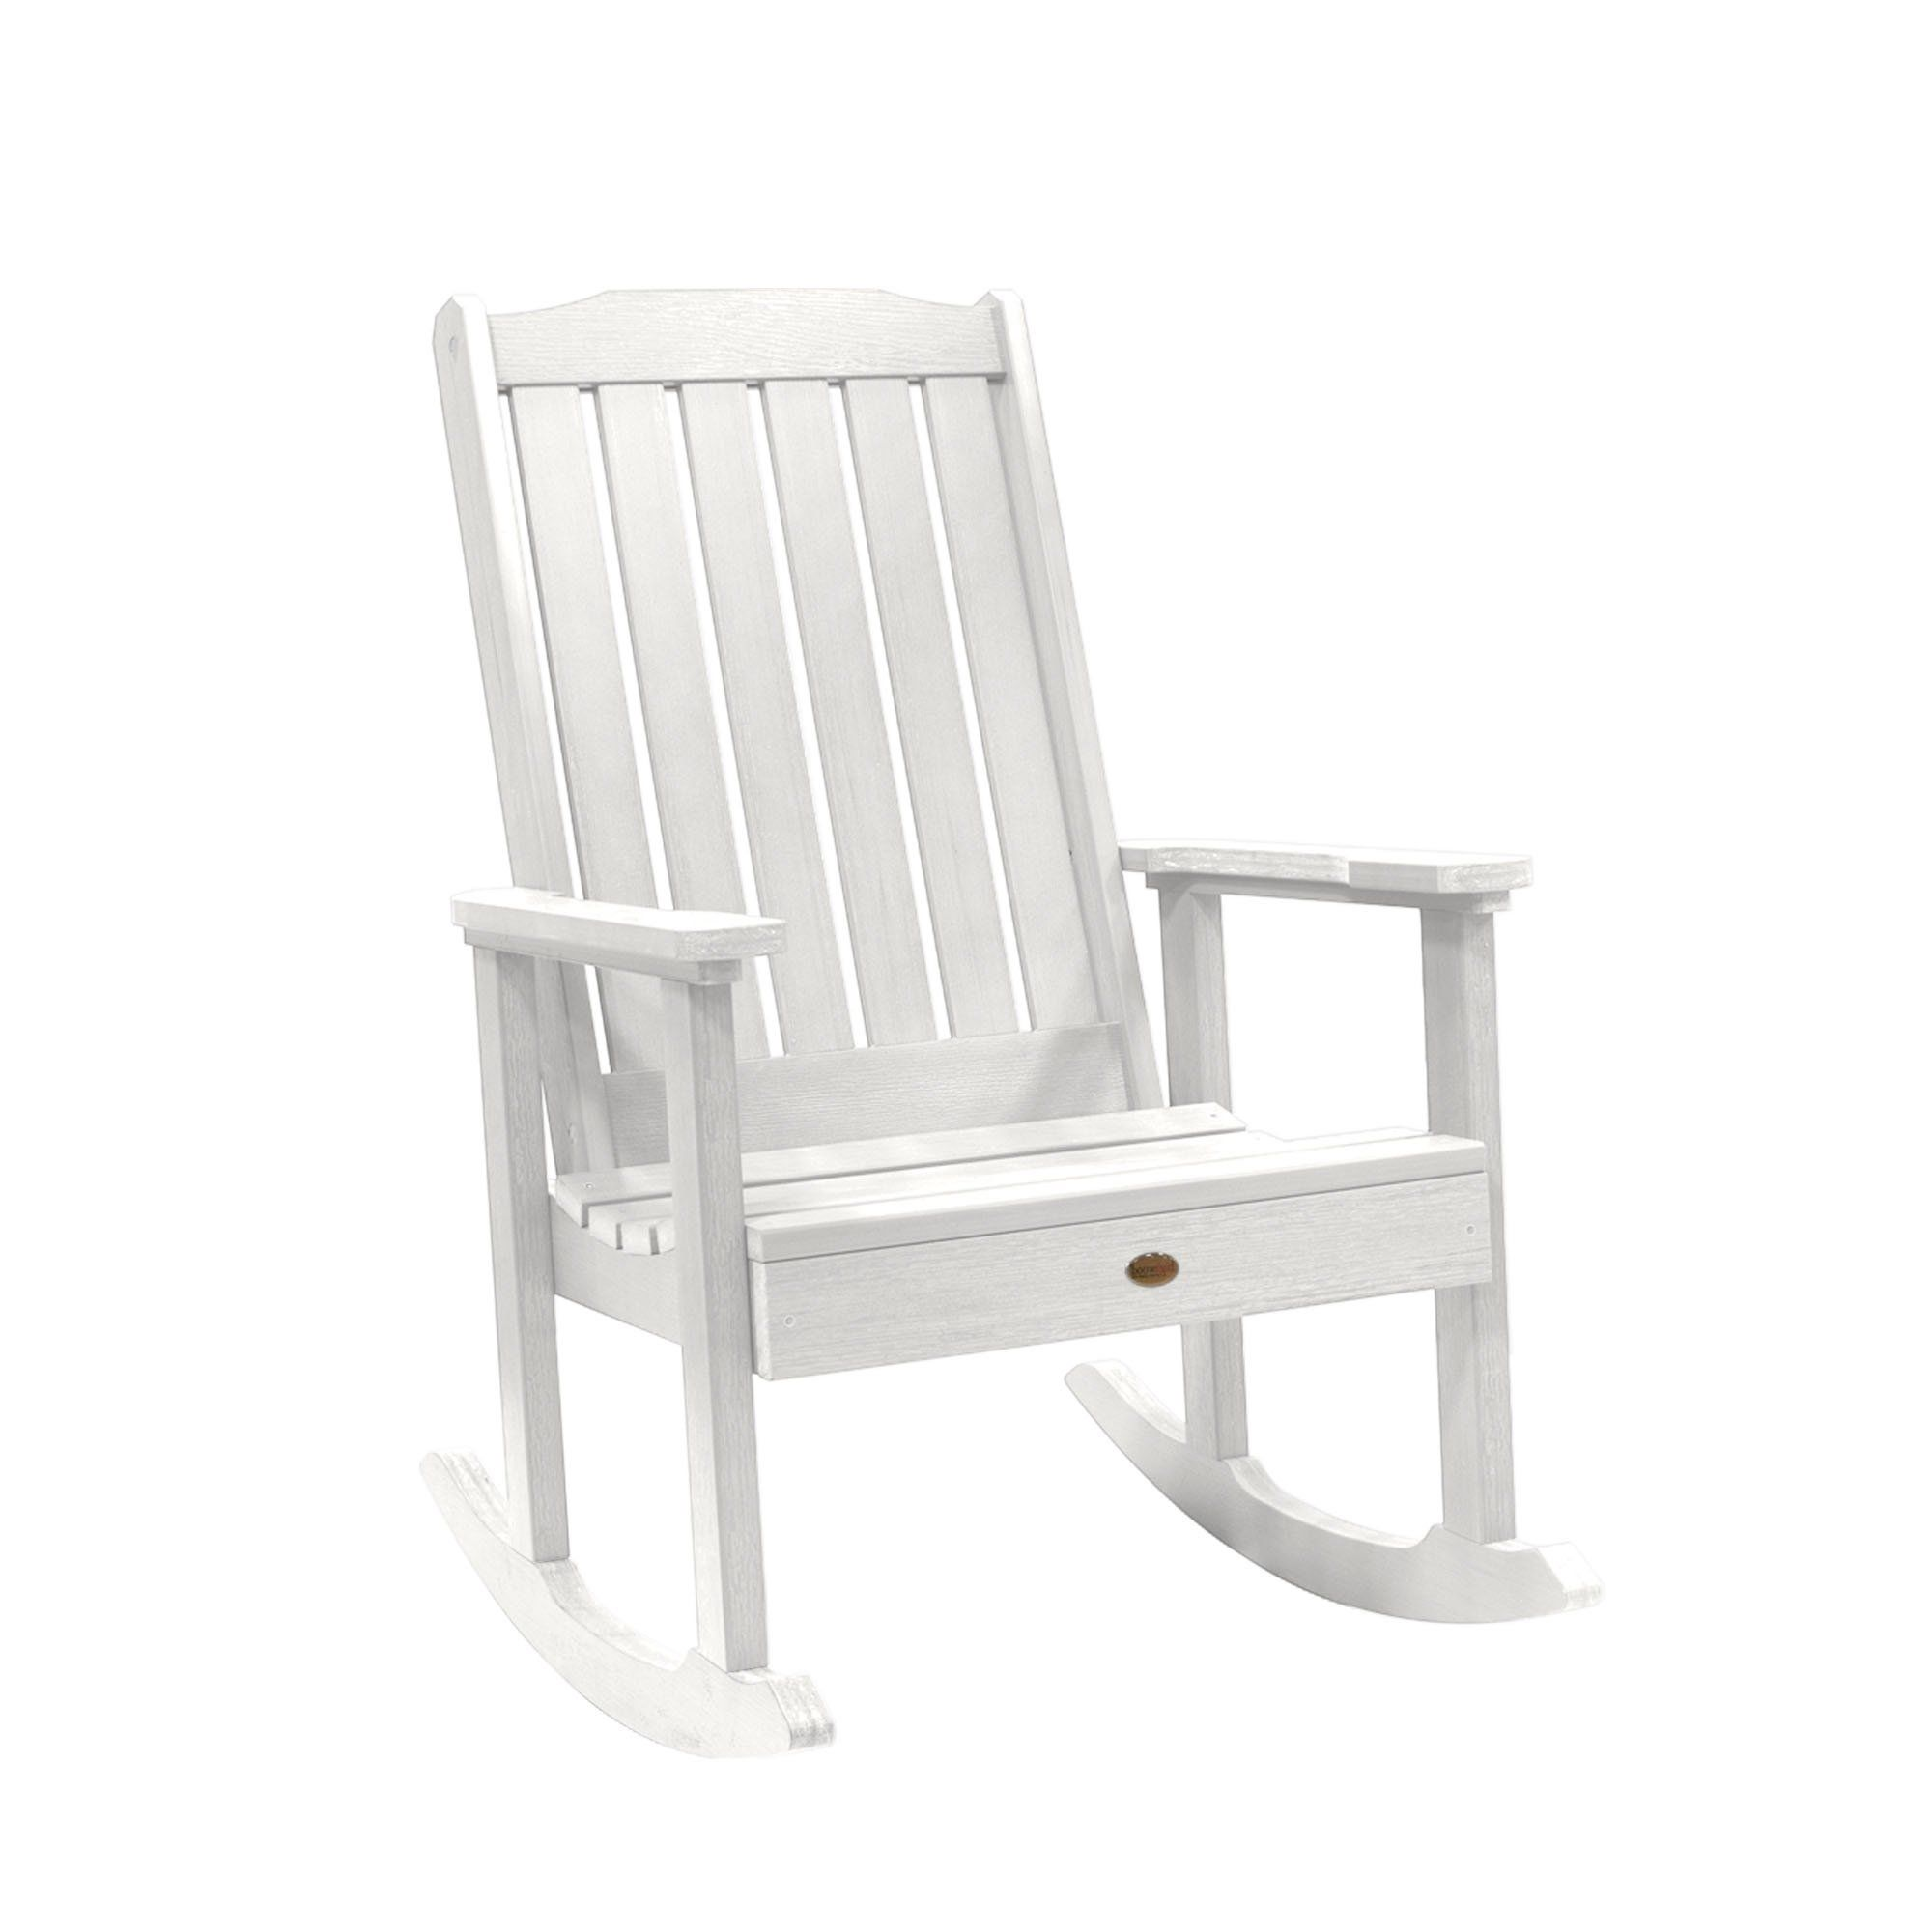 Super Oliver James Jacques Eco Friendly Synthetic Wood Rocking Caraccident5 Cool Chair Designs And Ideas Caraccident5Info